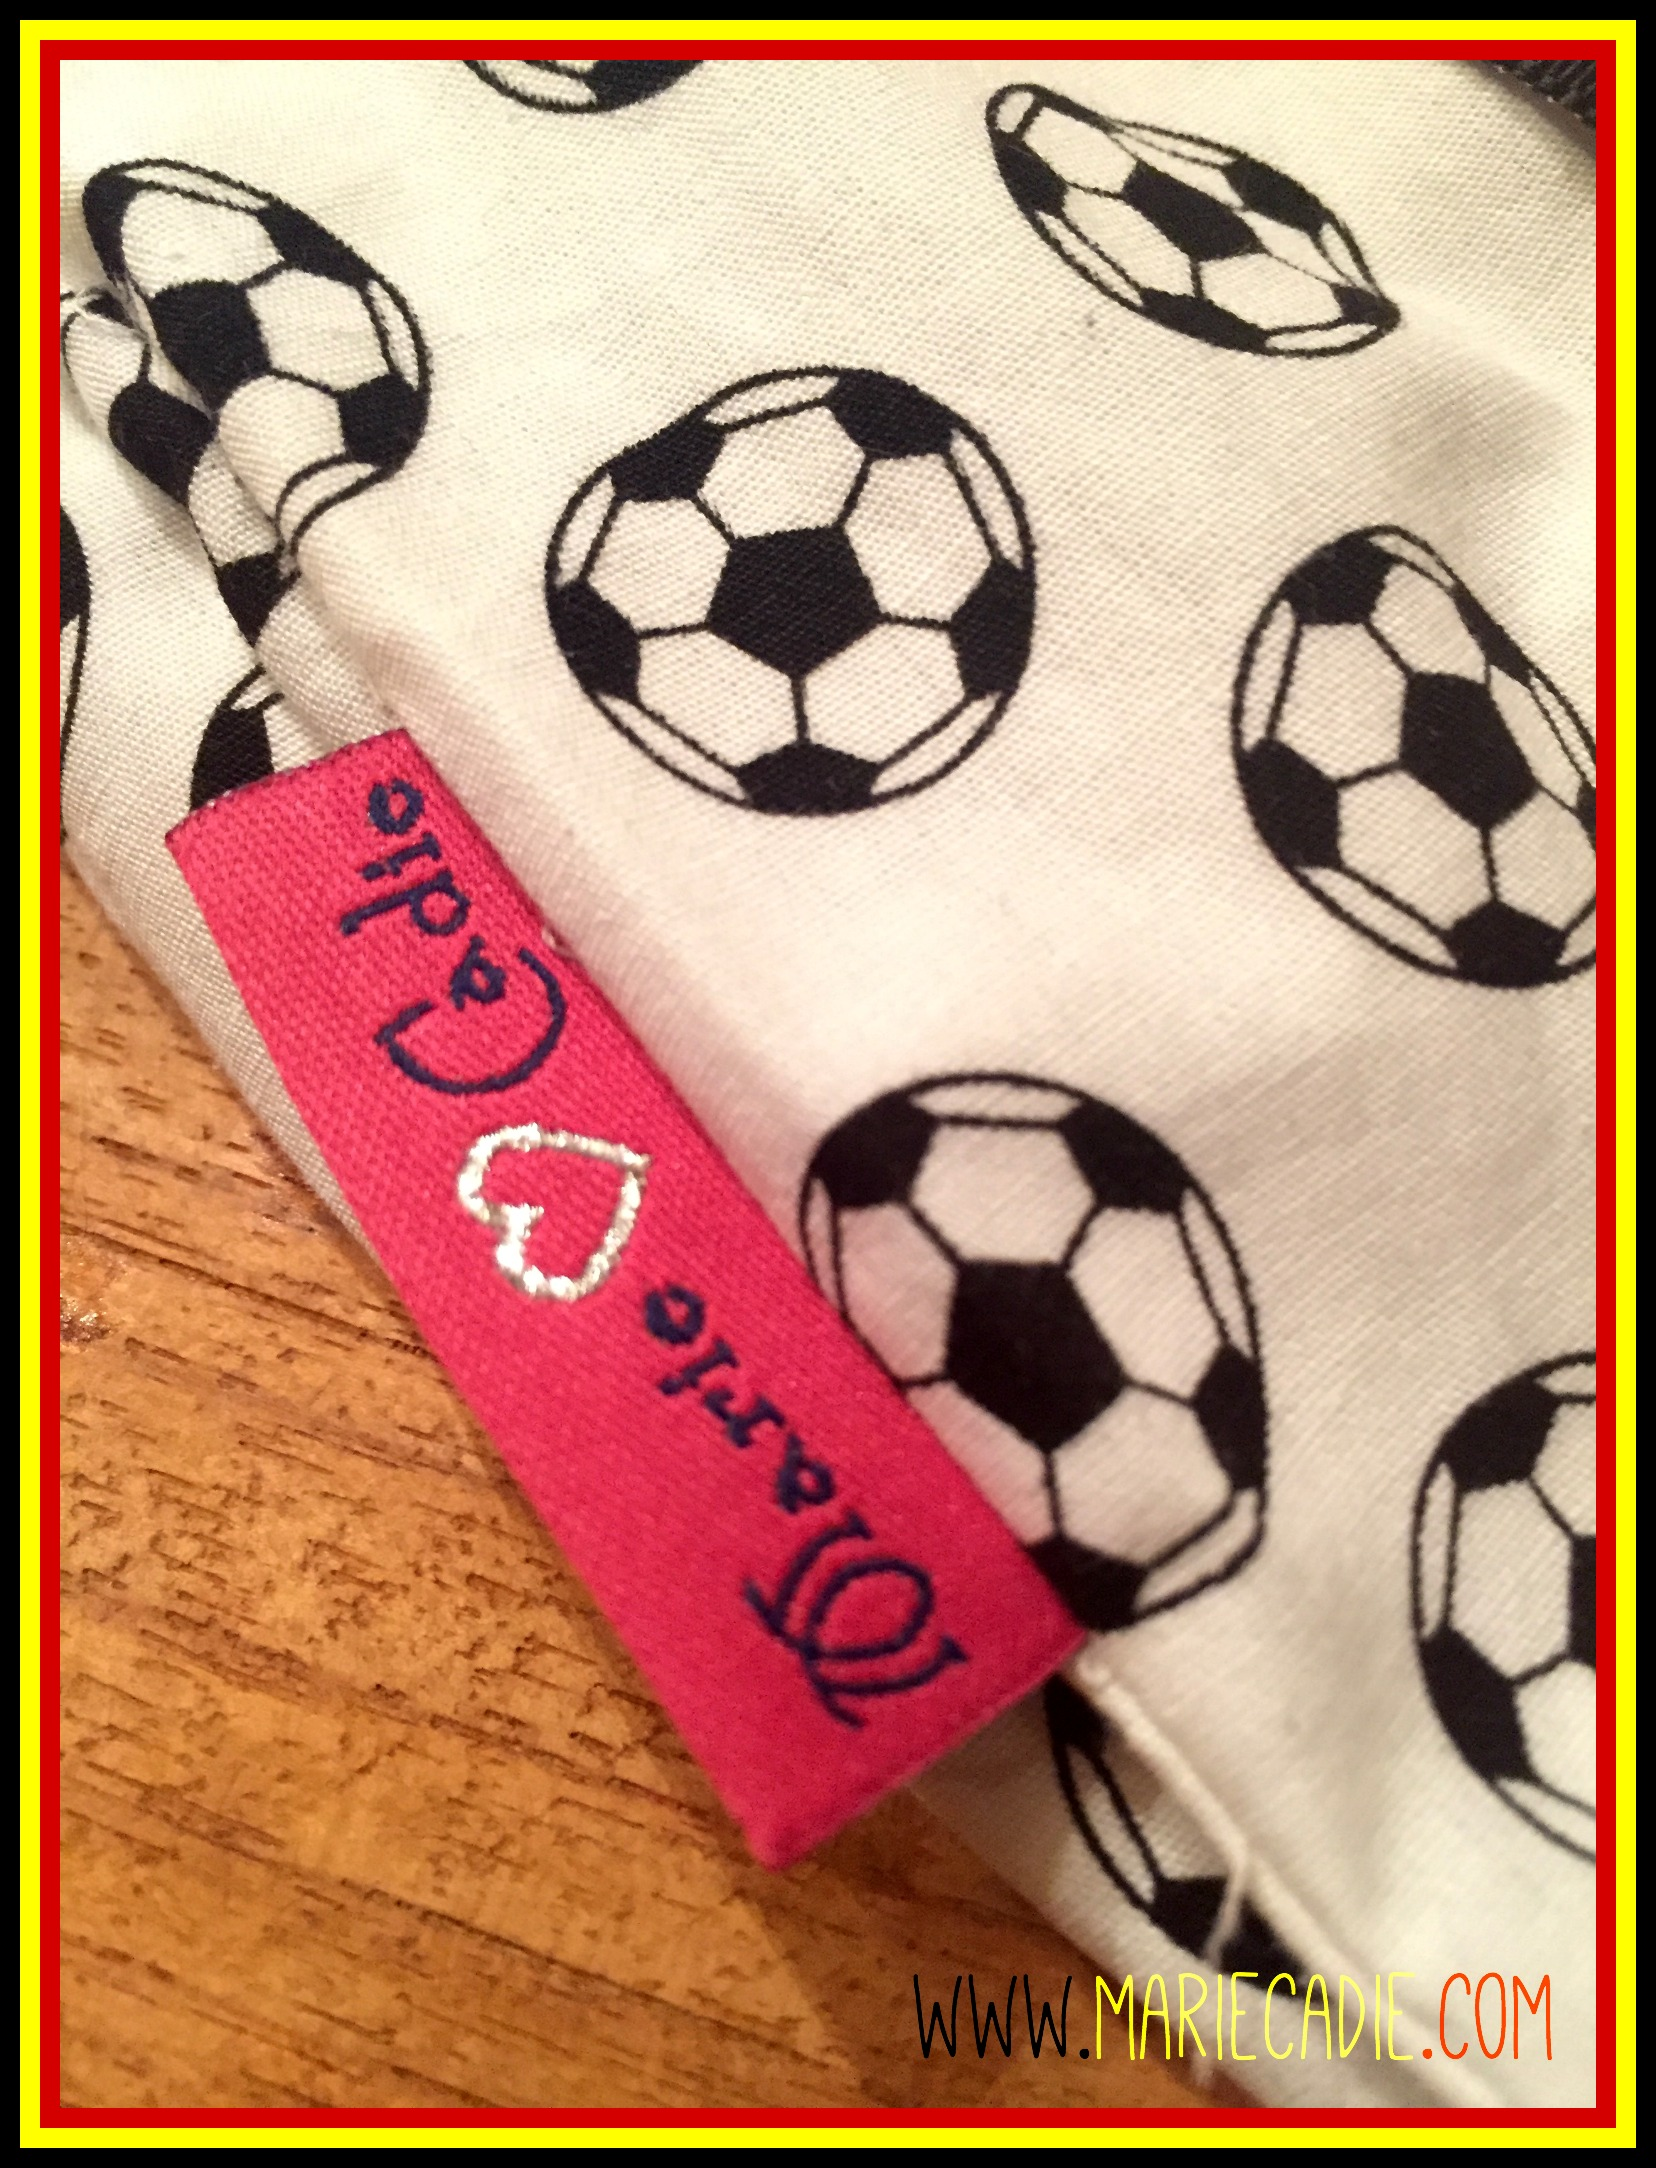 MarieCadie.com_voetbaloutfit_detail label